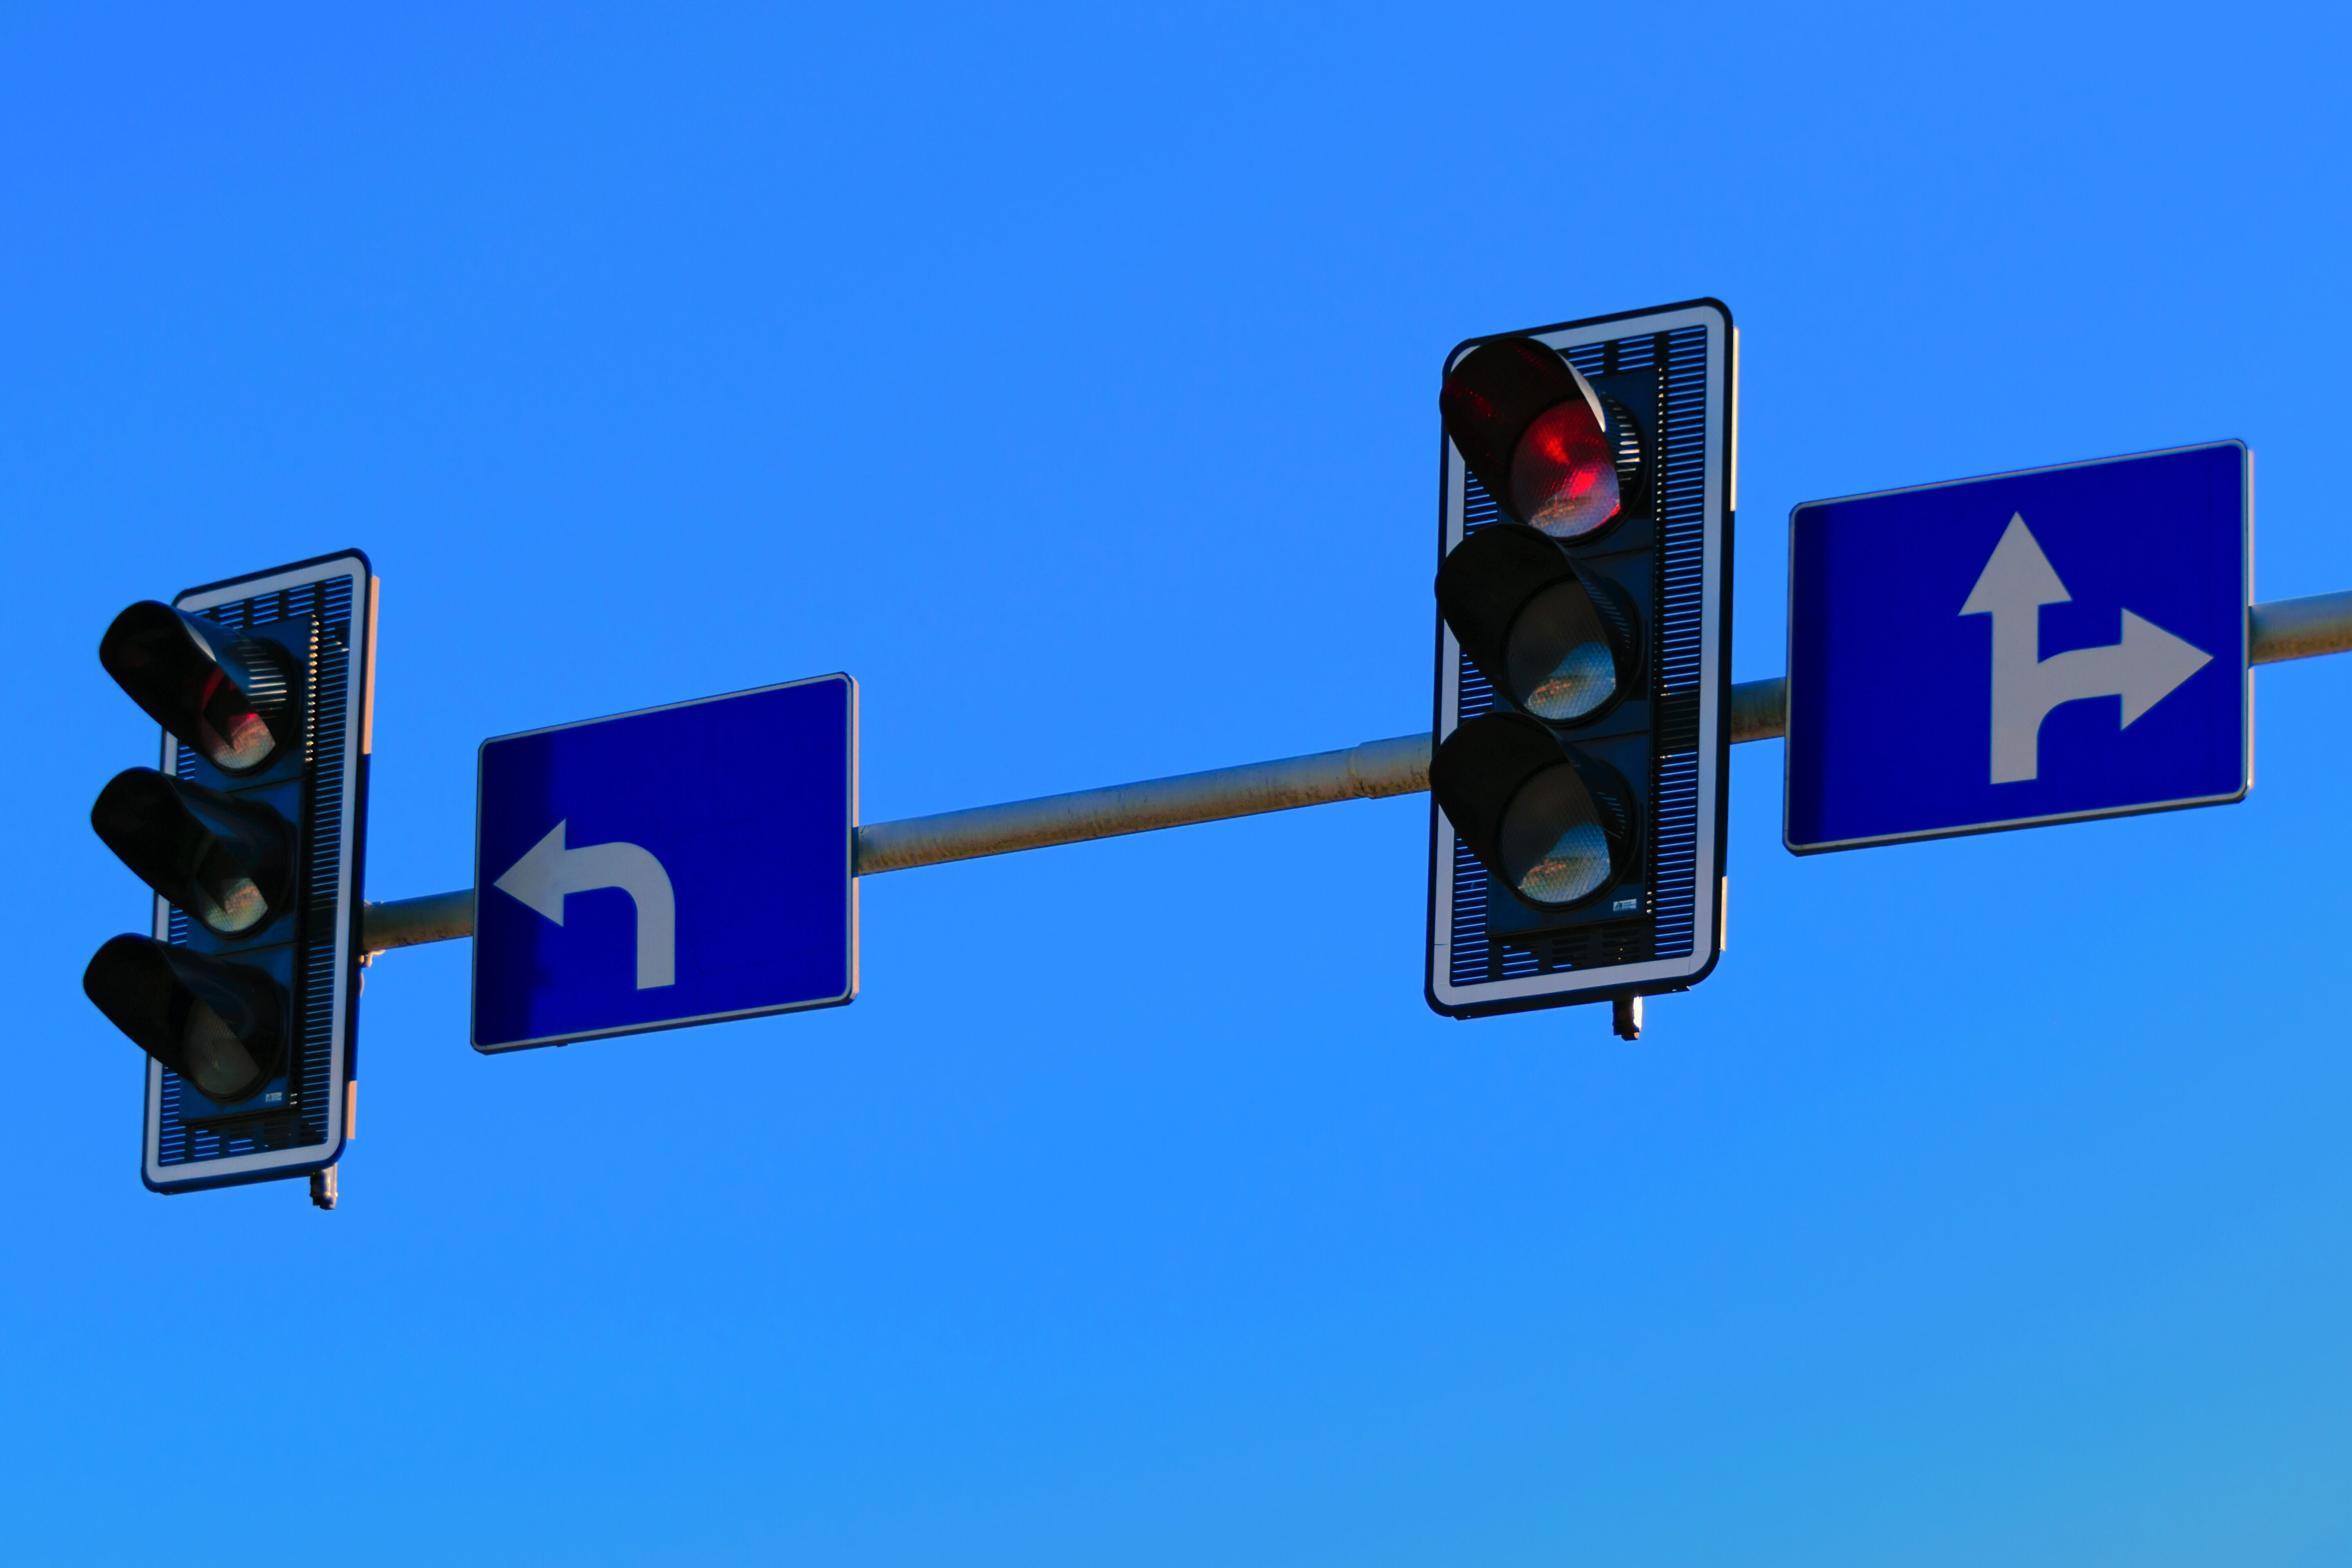 road signs - directions in life